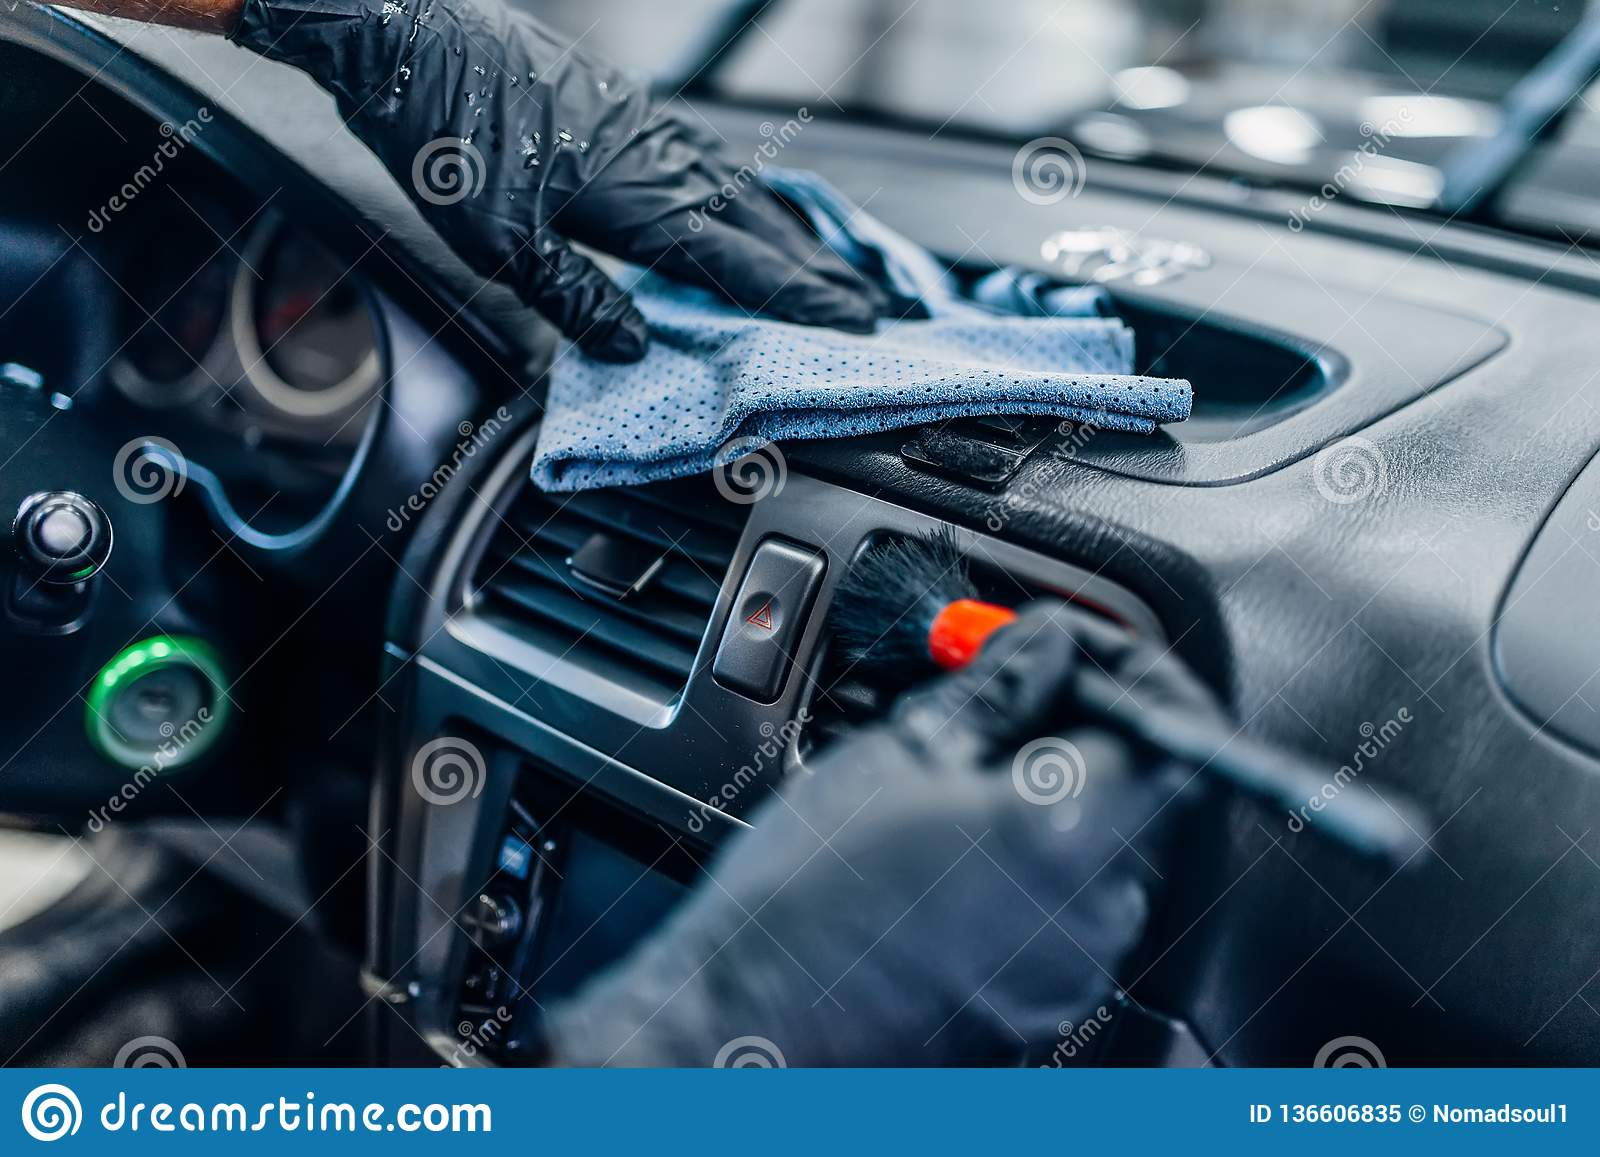 Auto Detailing Of Car Interior On Carwash Service Stock Image - Image of inside, service: 136606835